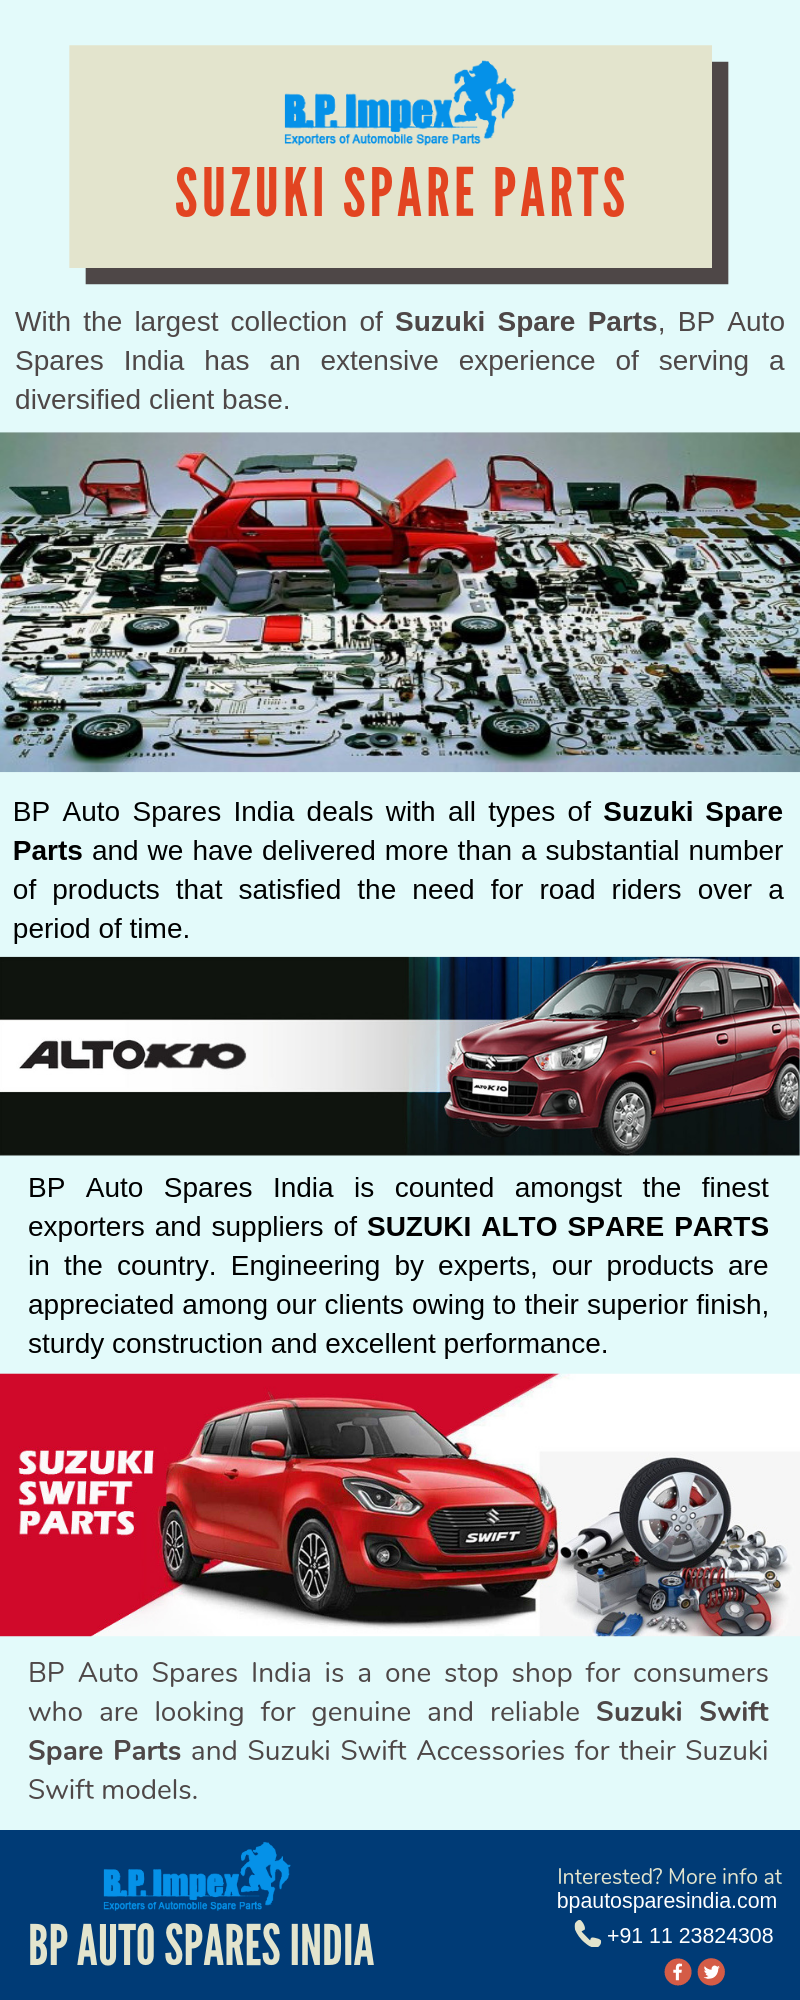 Bp Auto Spares India Produces Spare Parts At Very Affordable Rates